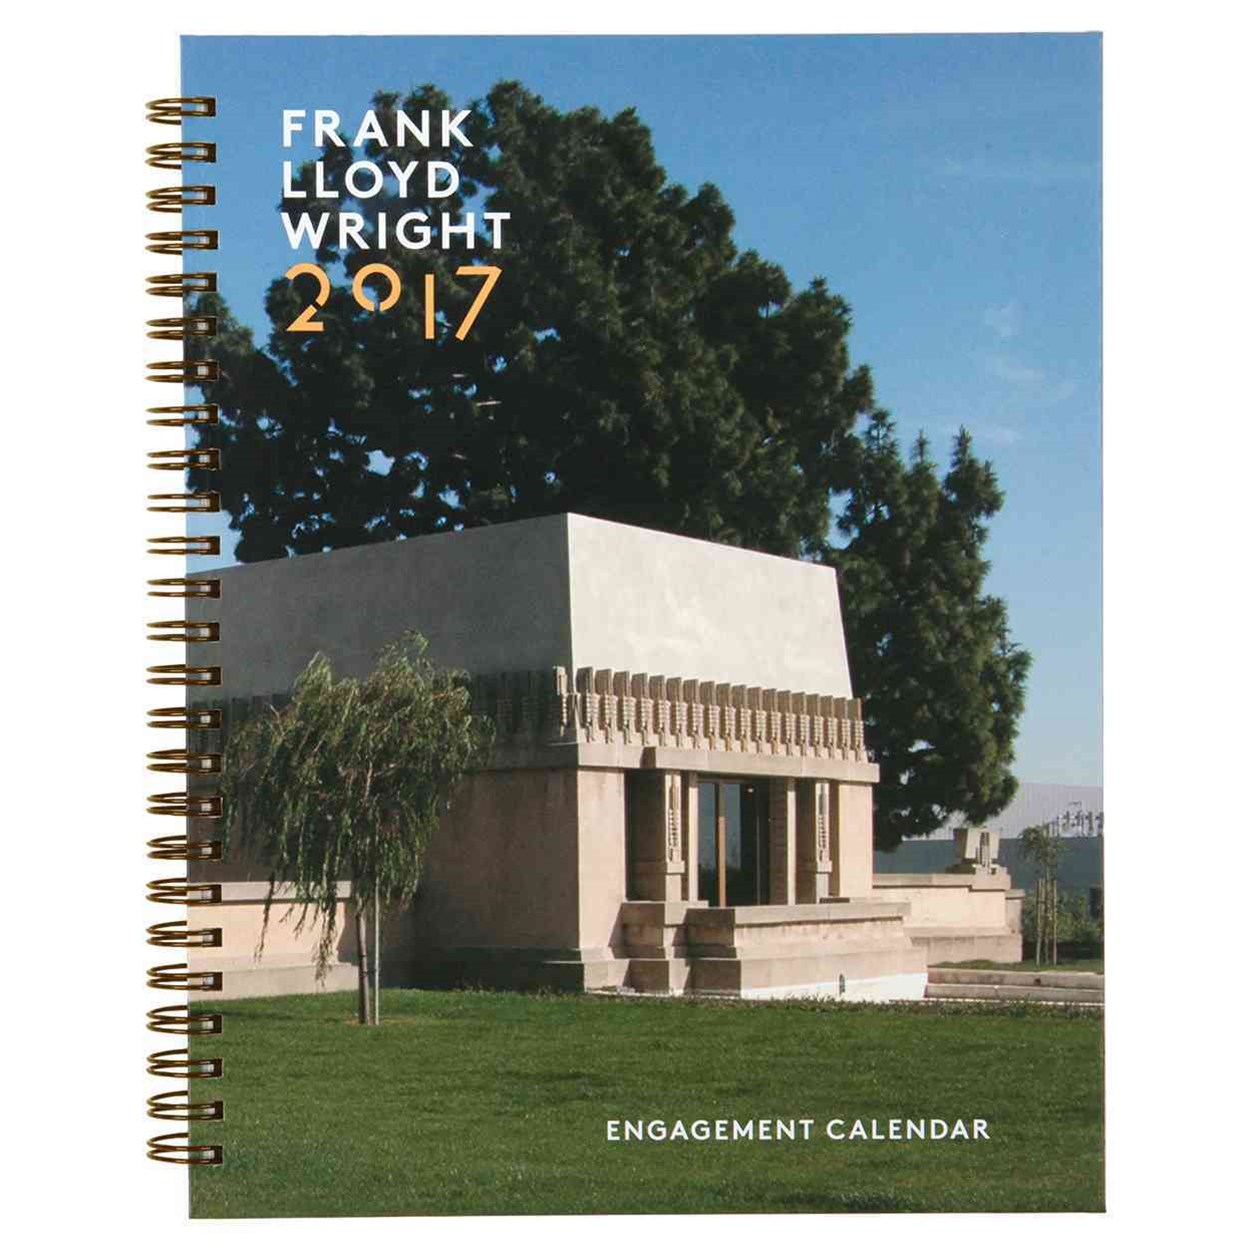 Frank Lloyd Wright 2017 Engagement Calendar